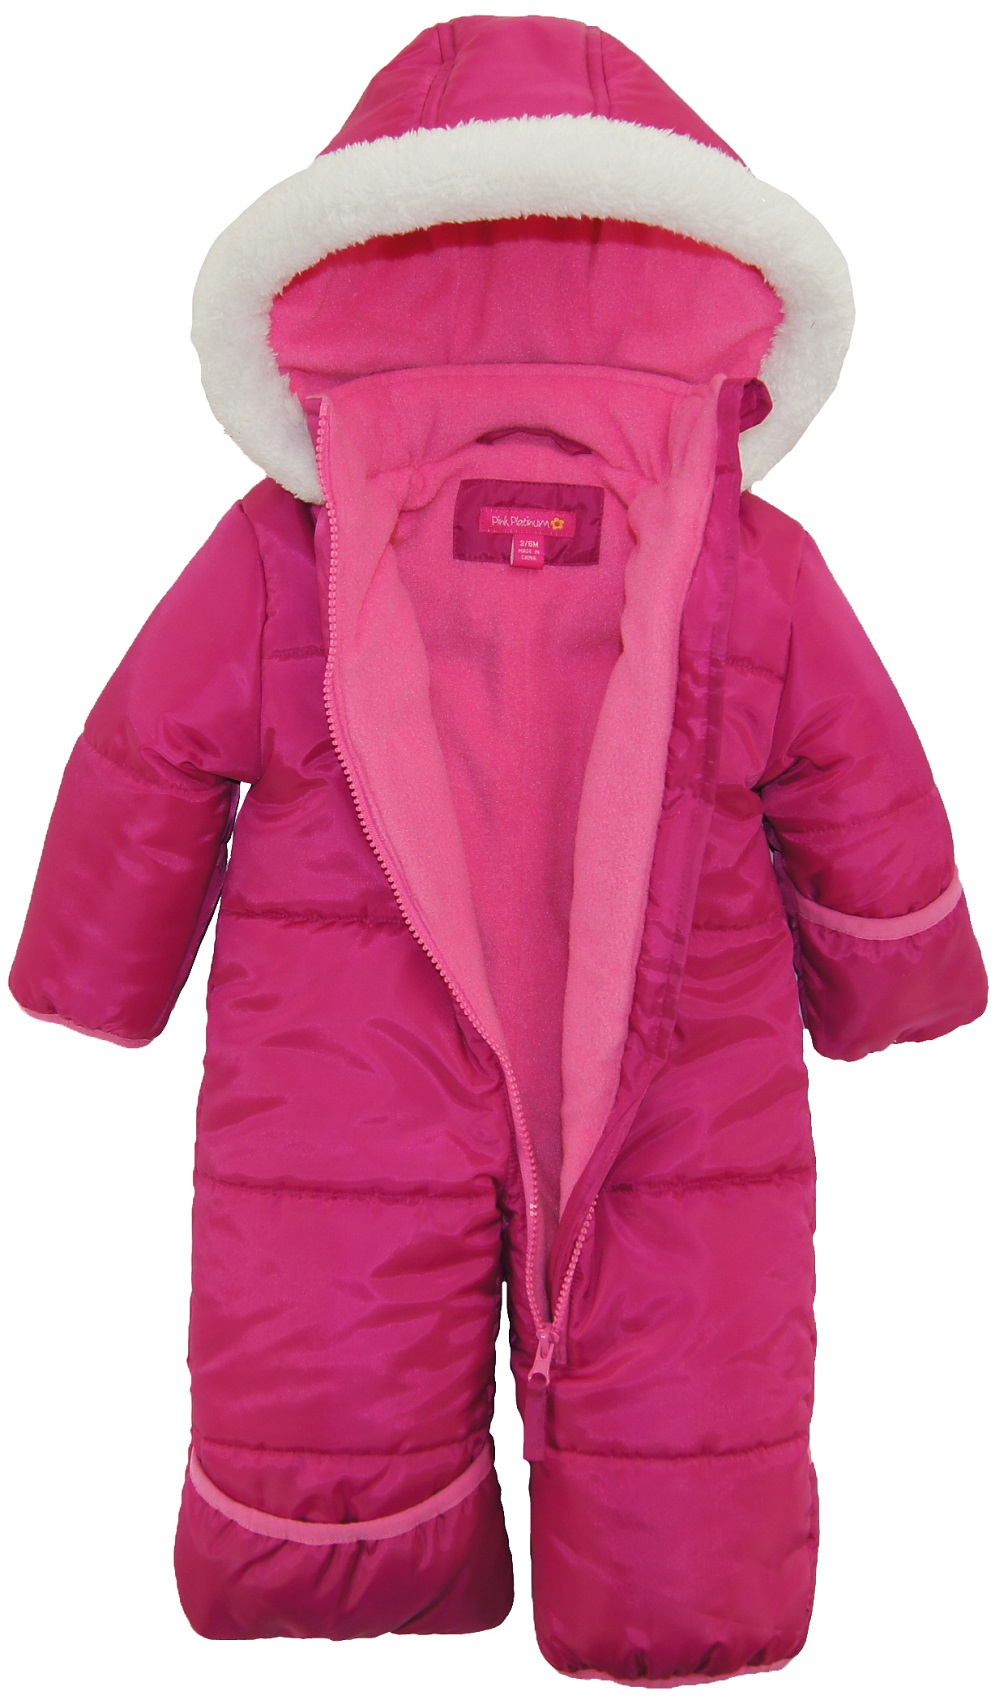 itm pink coat platinum garden flowers girls spring windbreaker hooded jacket baby